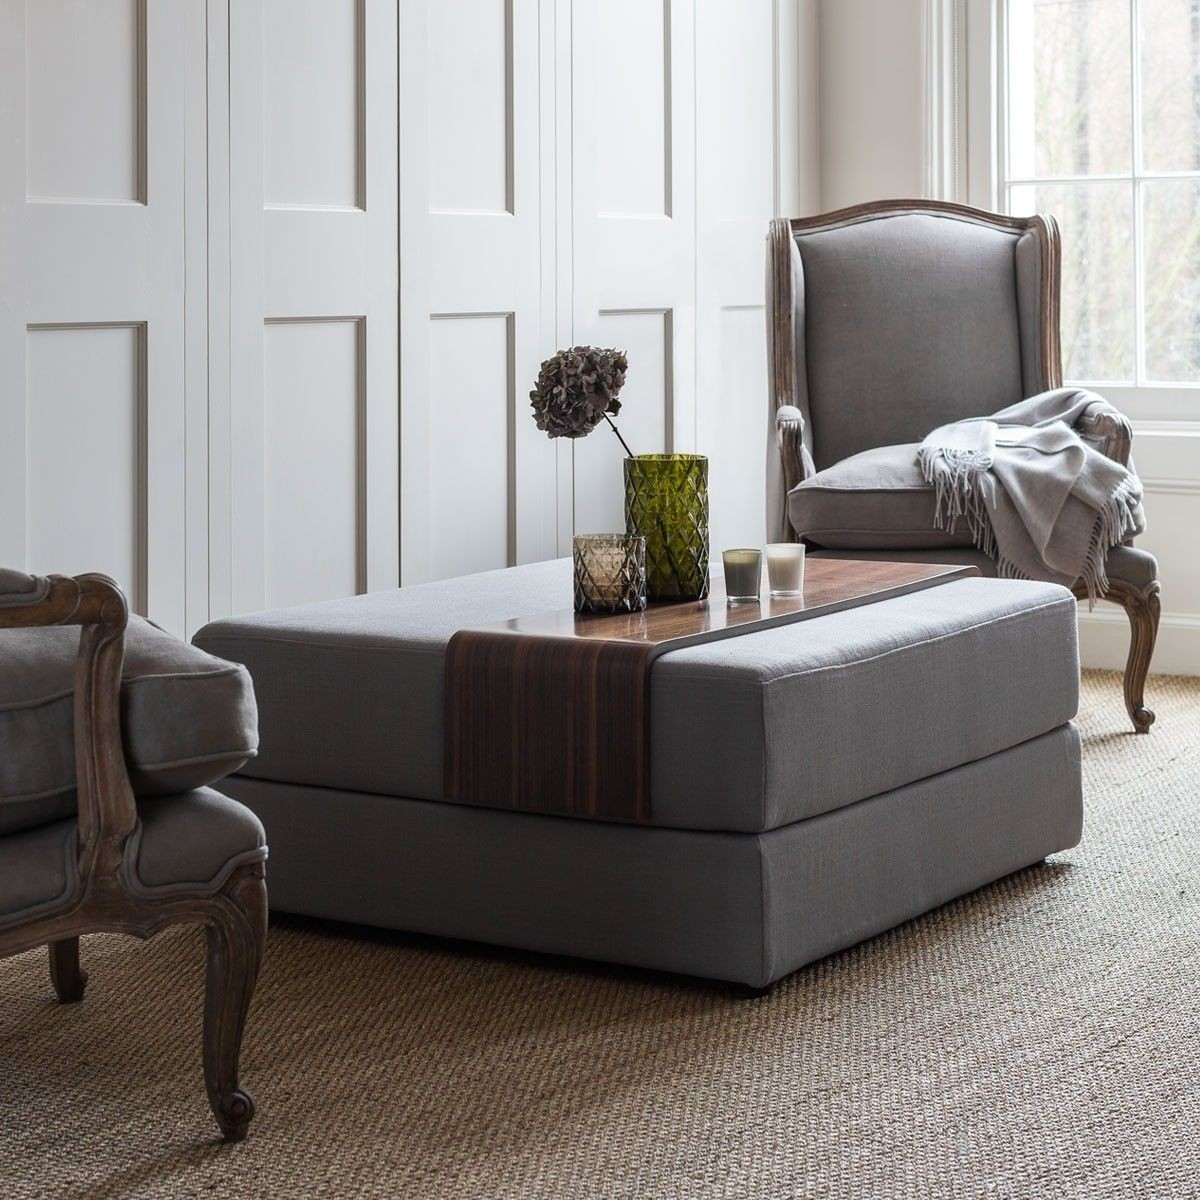 Contemporary Ottoman Coffee Table Ideas On Foter